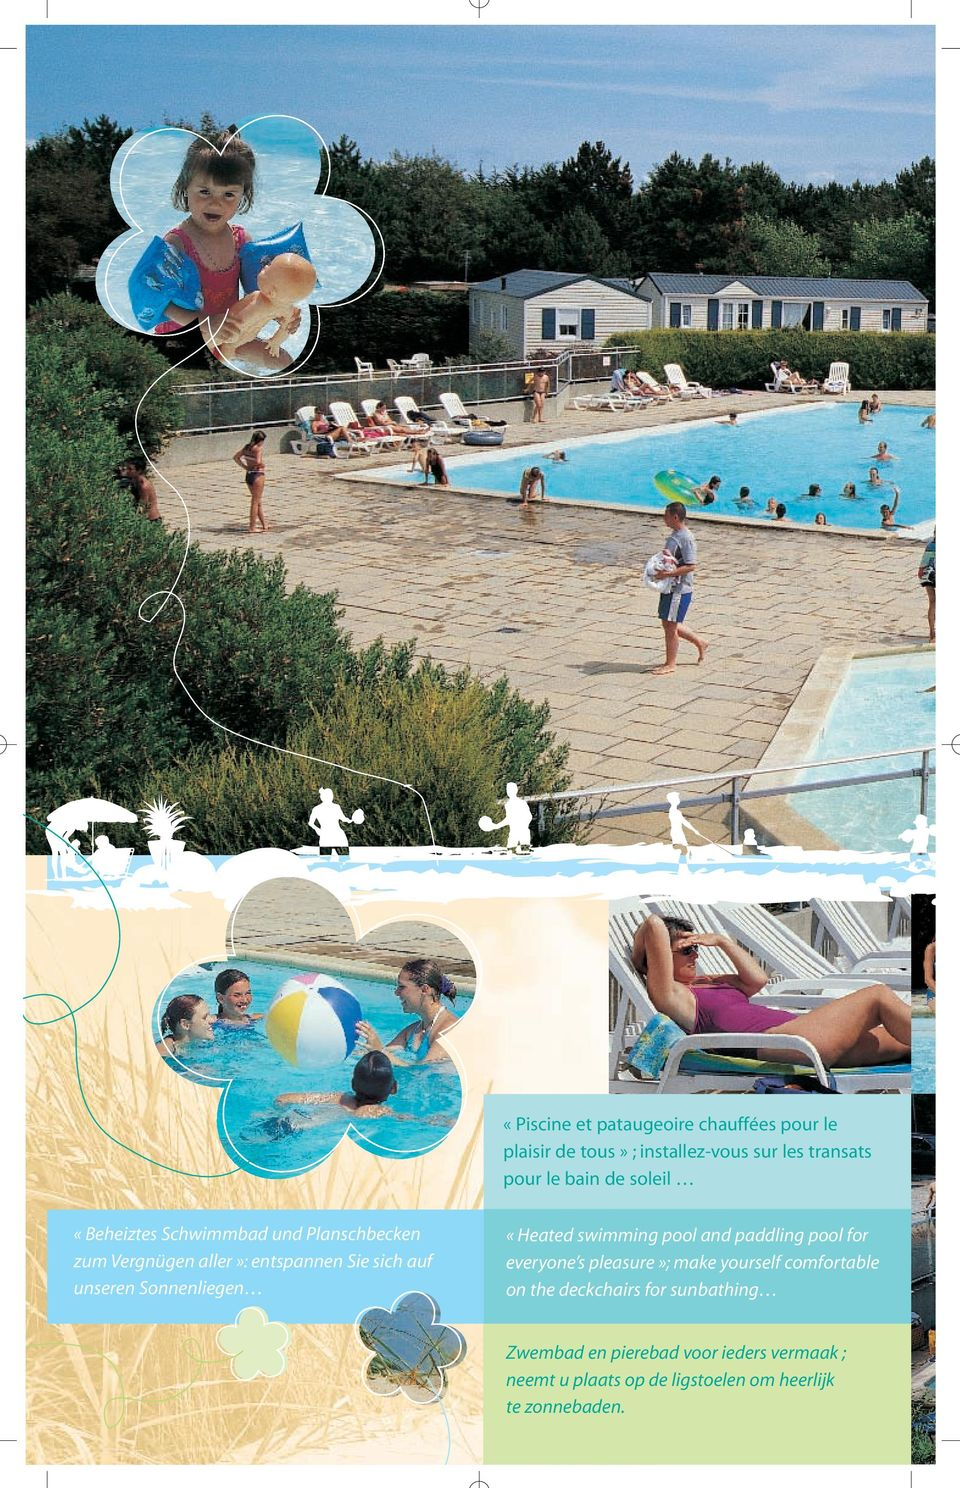 Sonnenliegen «Heated swimming pool and paddling pool for everyone s pleasure»; make yourself comfortable on the